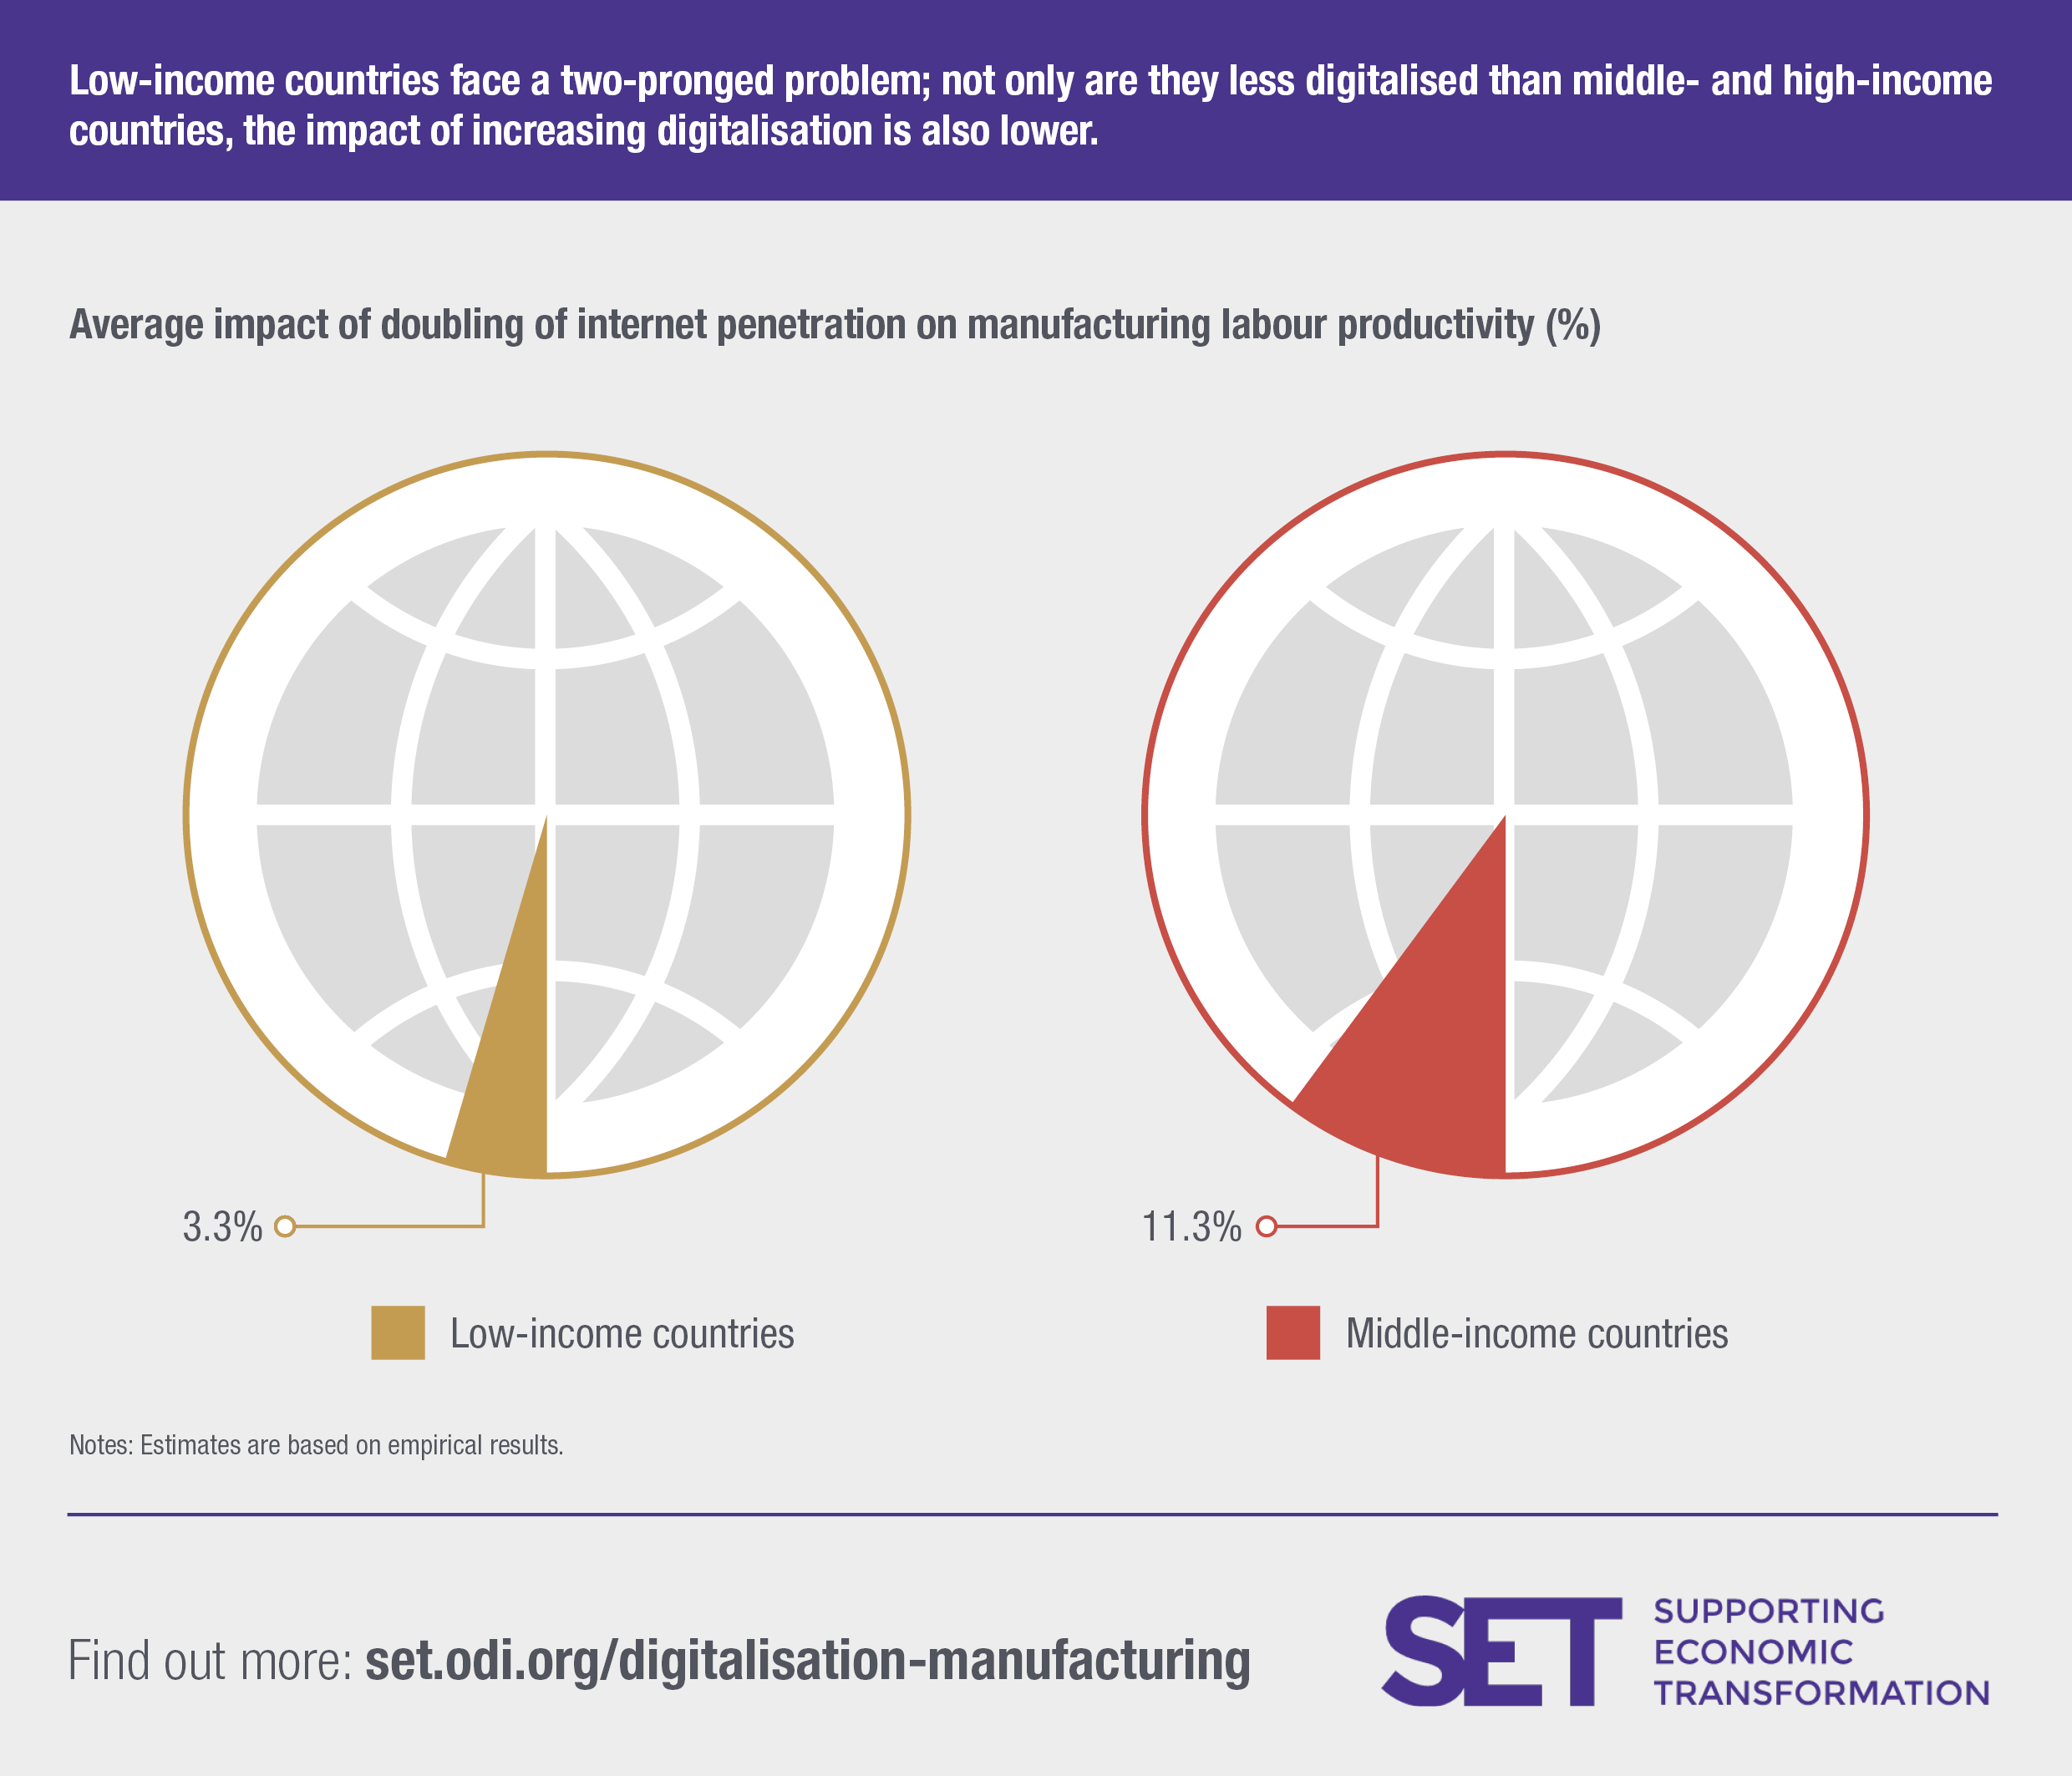 Not only are developing countries less digitalised, the impact of digitalisation on productivity is also less than in middle-income countries. Image: SET programme.